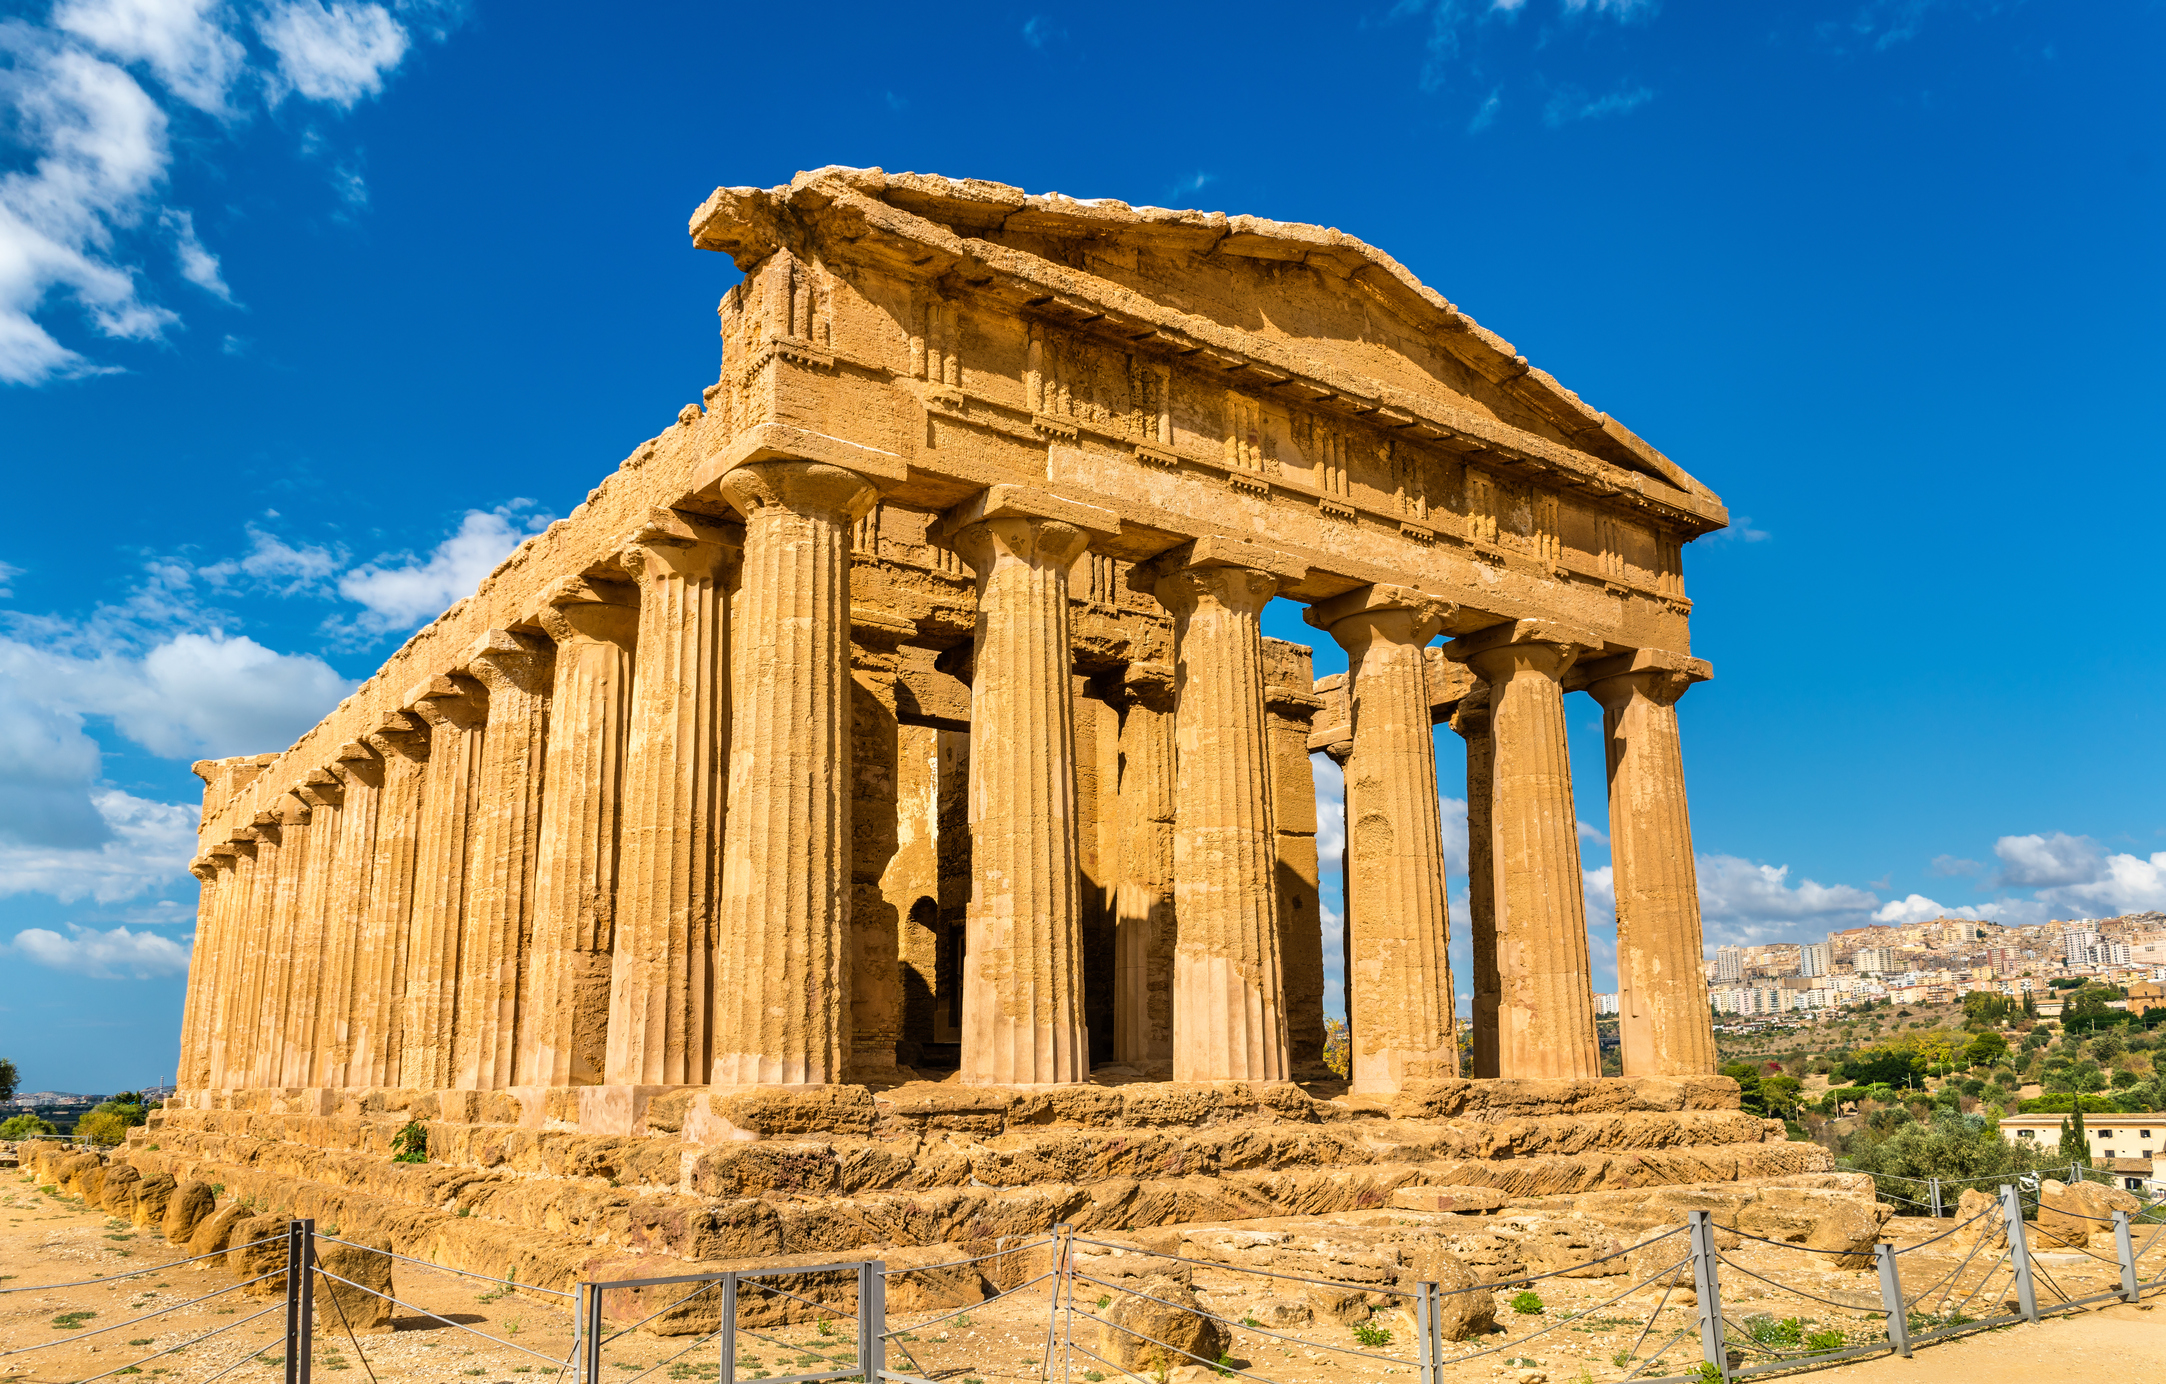 Temple of Concordia in the Valley of the Temples on Sicily, Italy